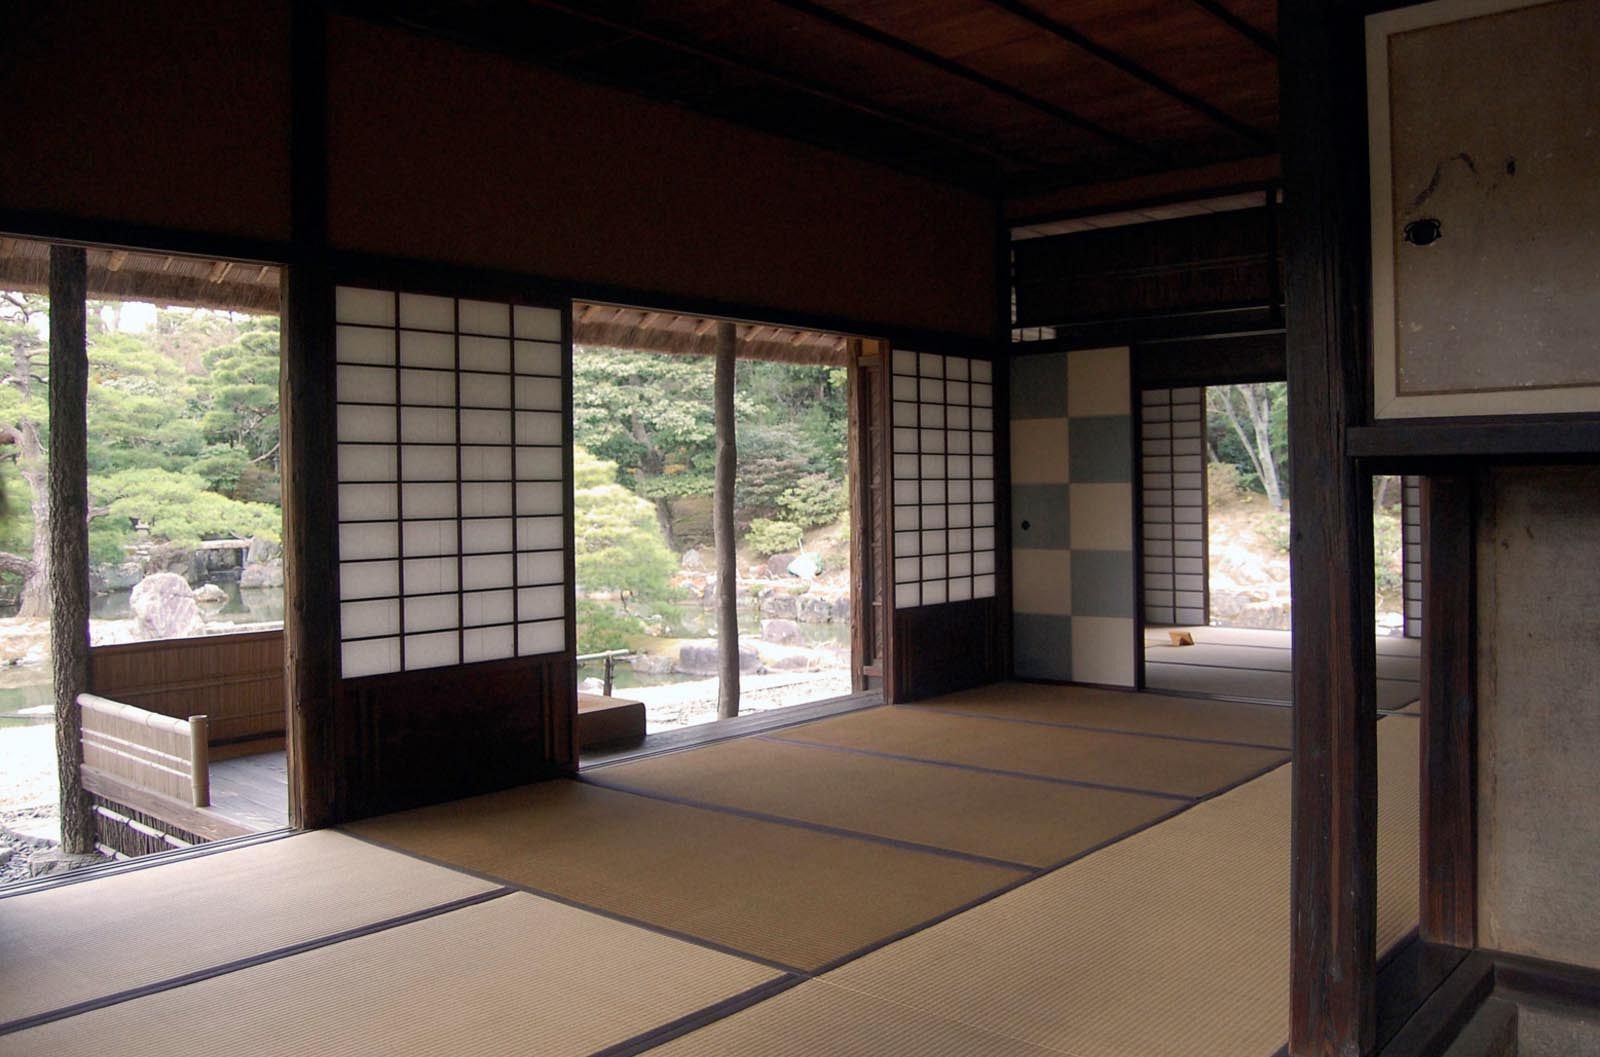 Katsura Imperial Villa, Kyoto, c. 1620's. Spatial sequence between inside and outside.